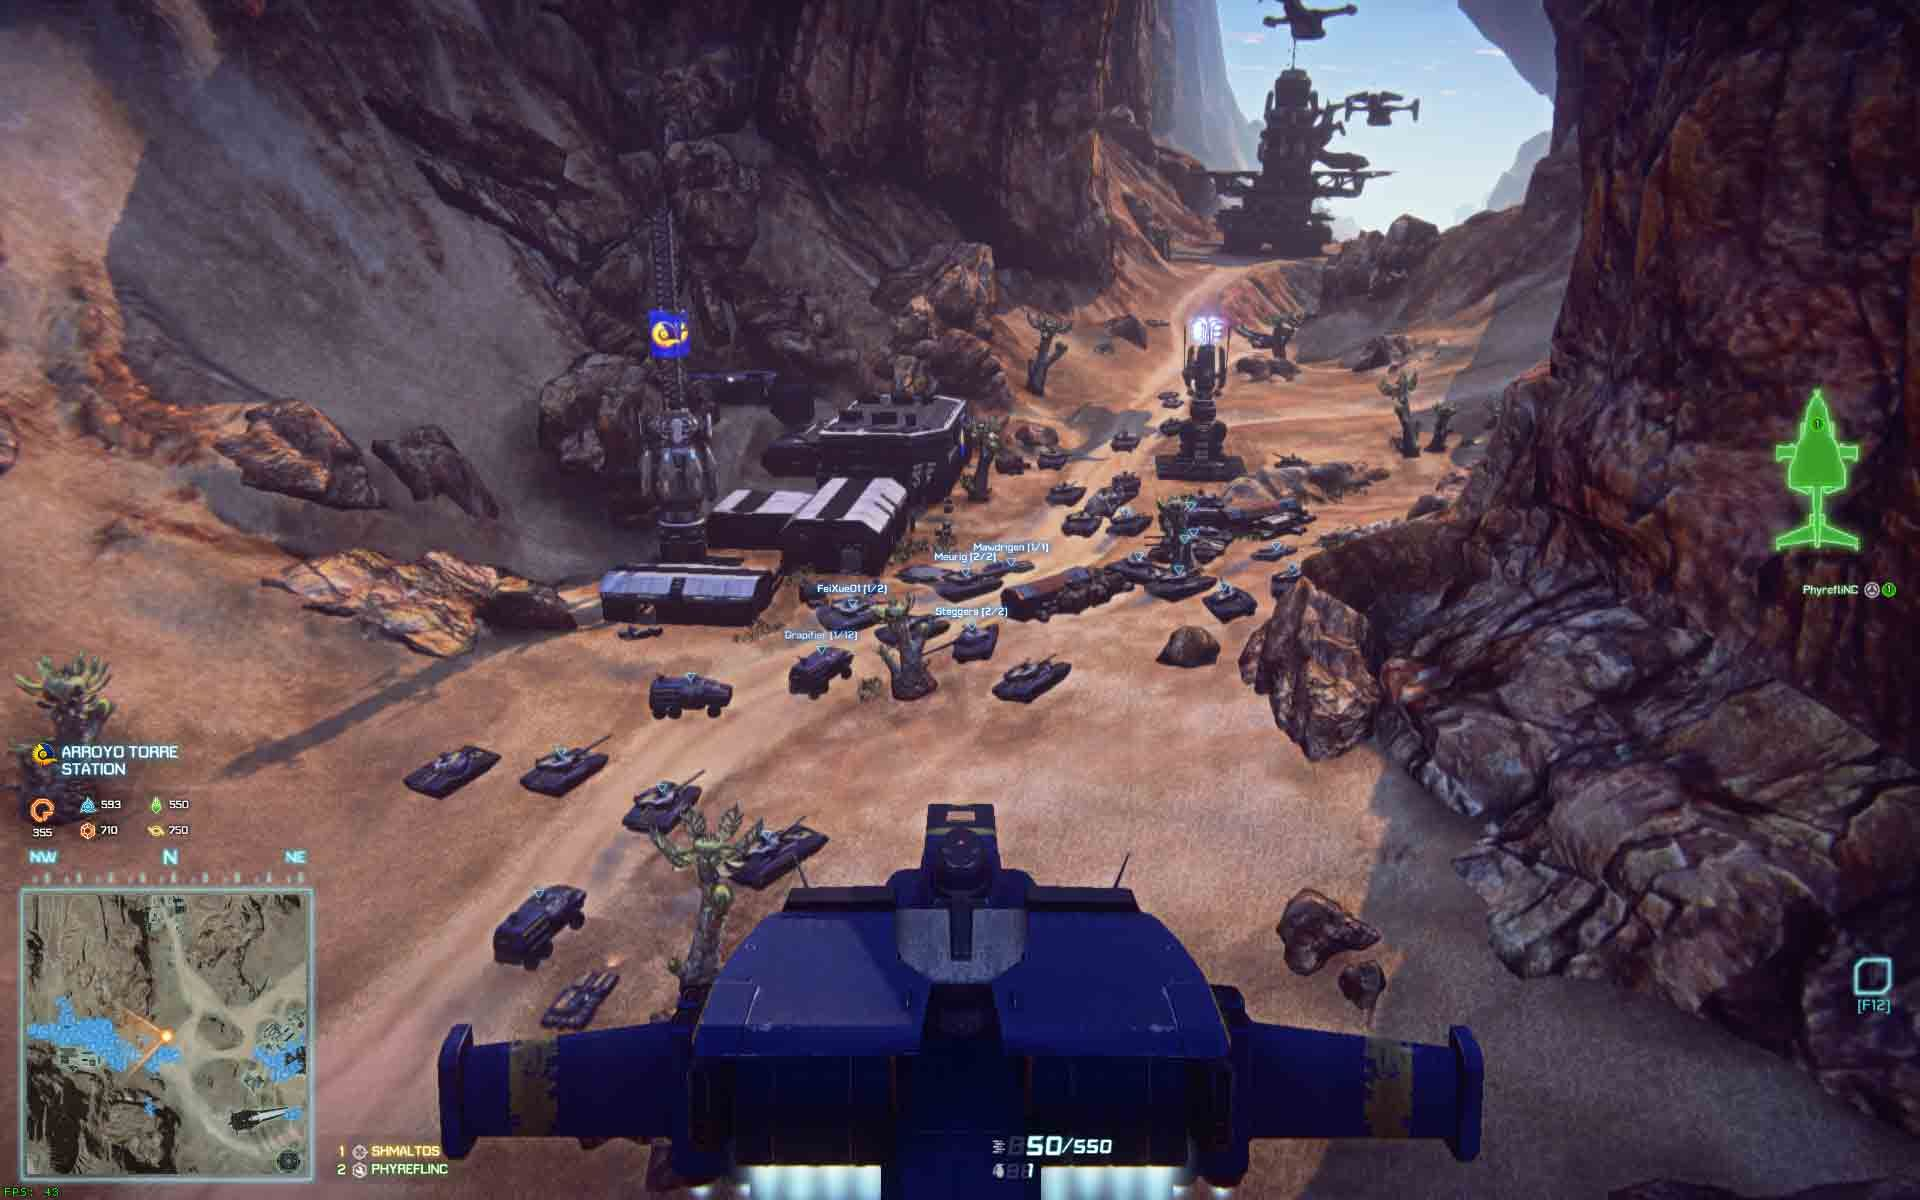 mmo fps example planetside 2 is about three factions fighting for